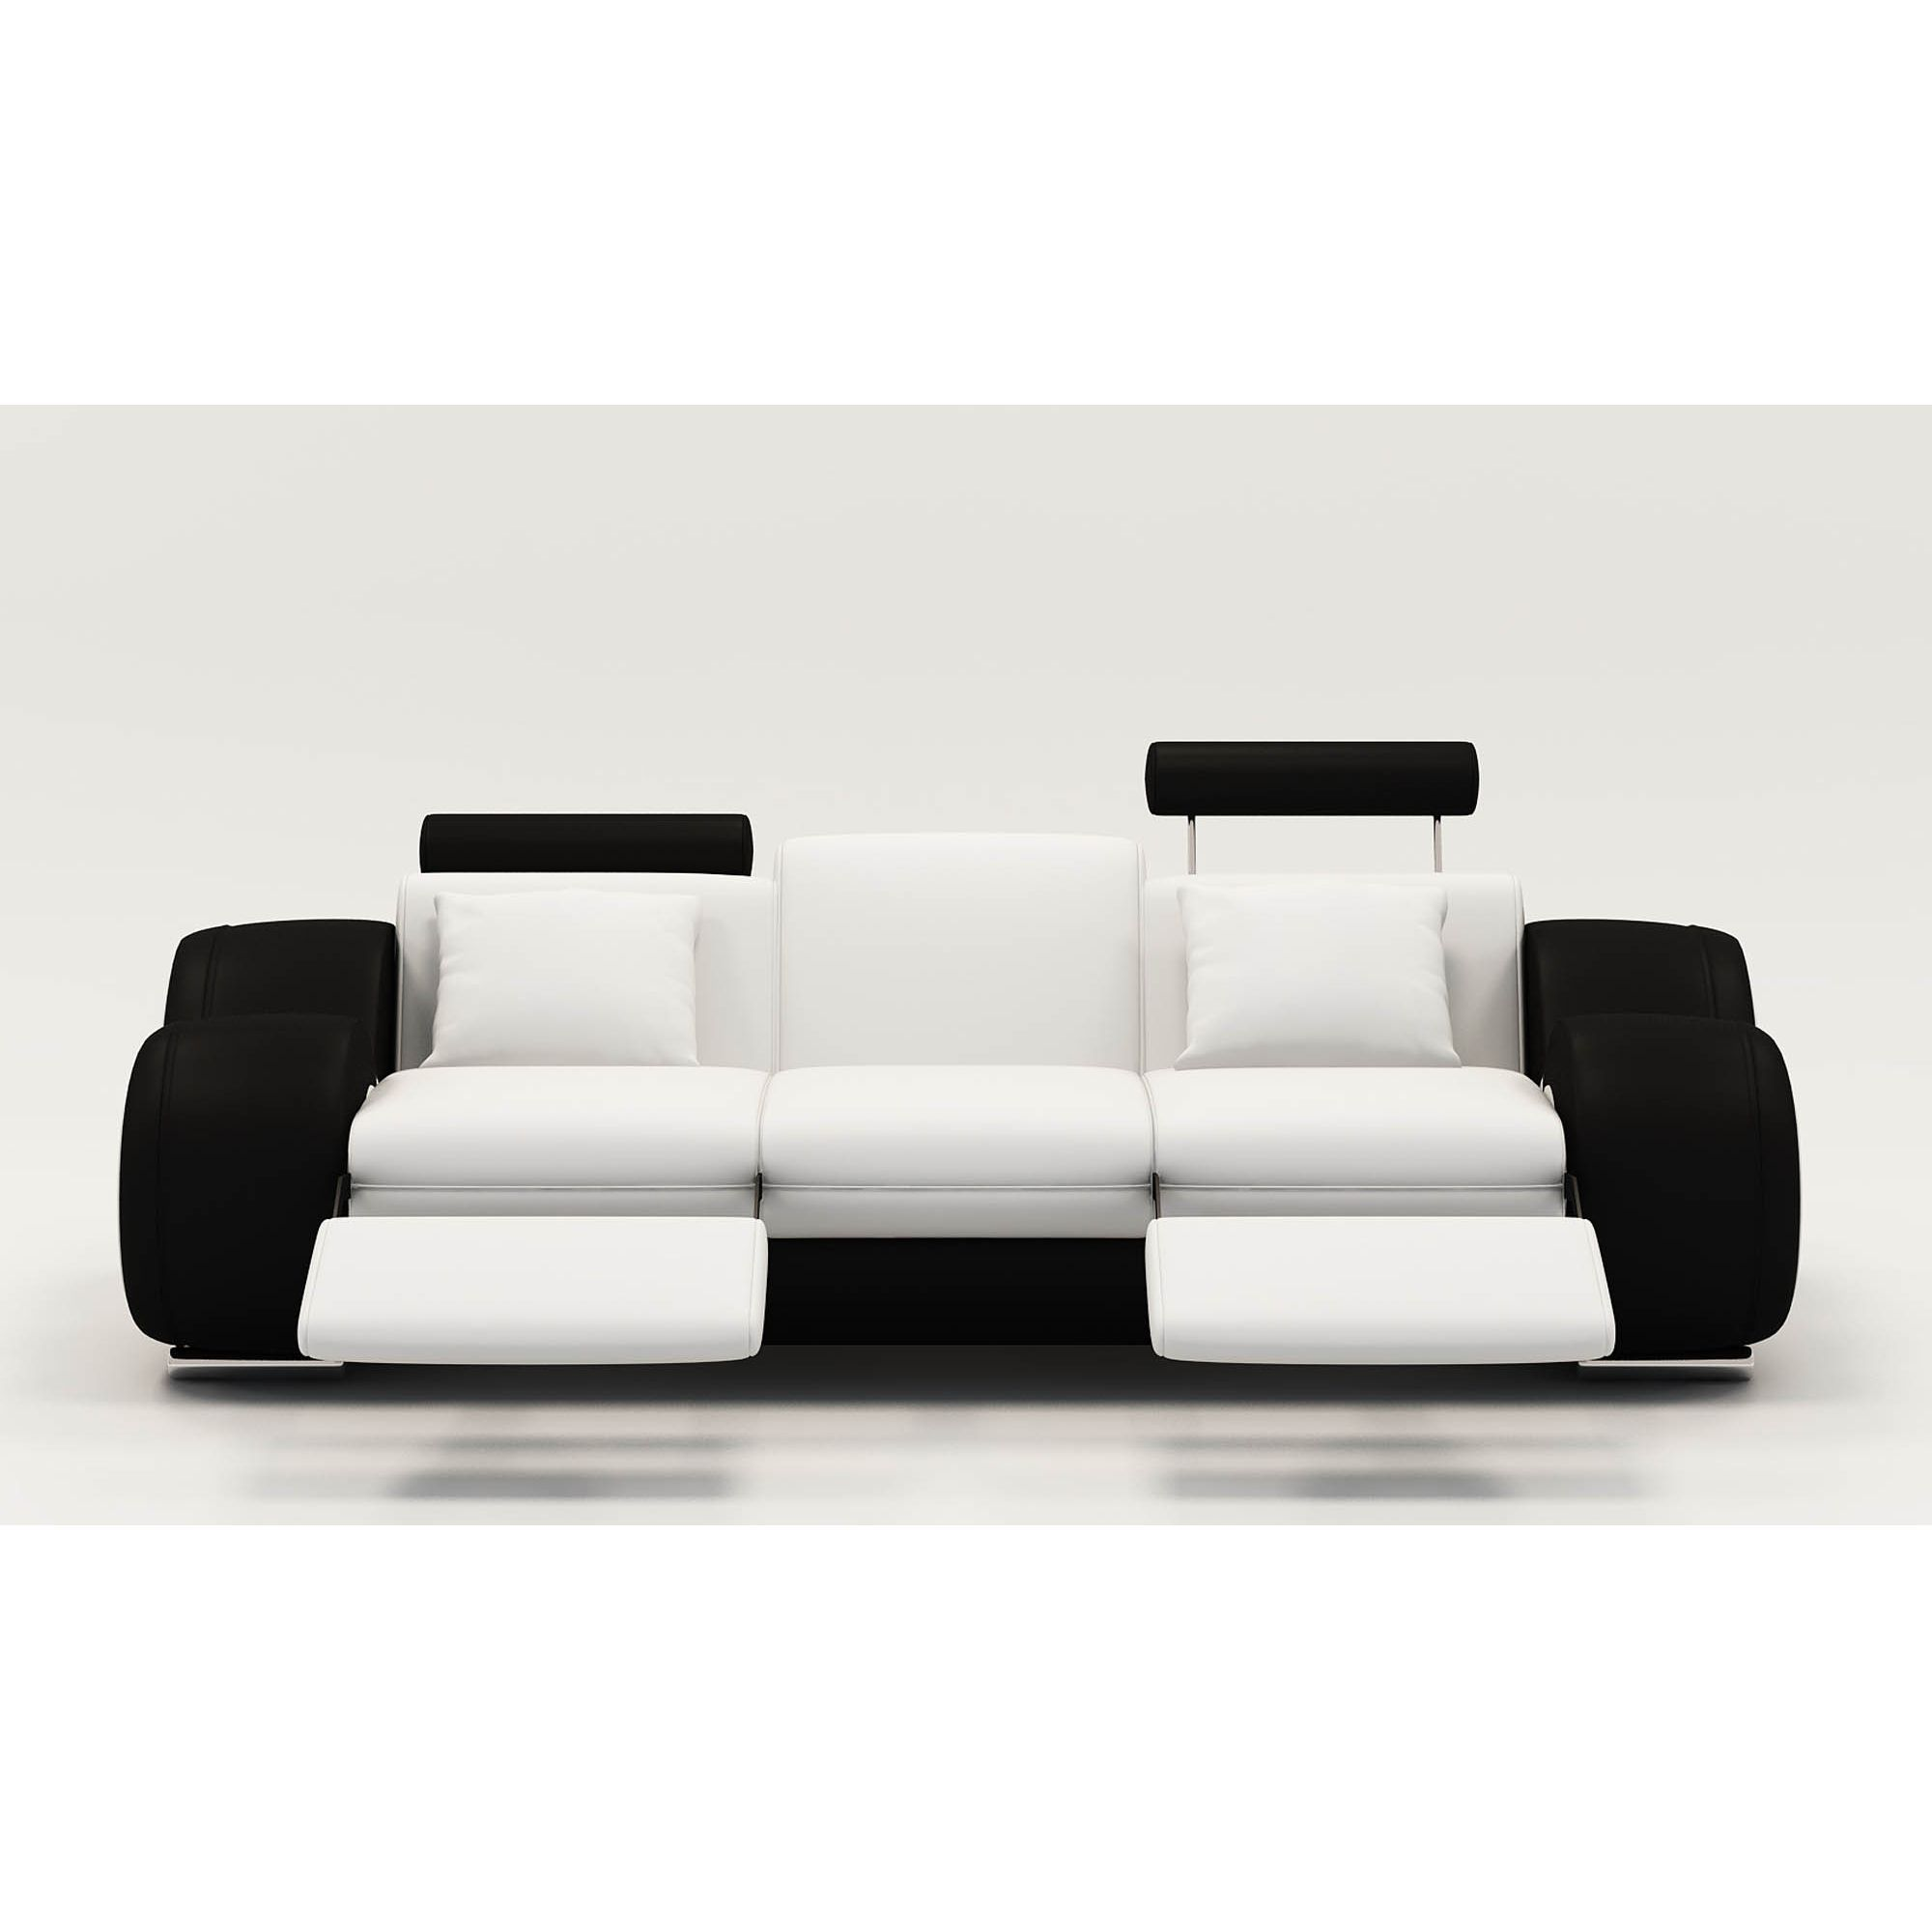 Deco in paris ensemble canape relax design 3 2 1 places - Canape 3 places 2 relax ...